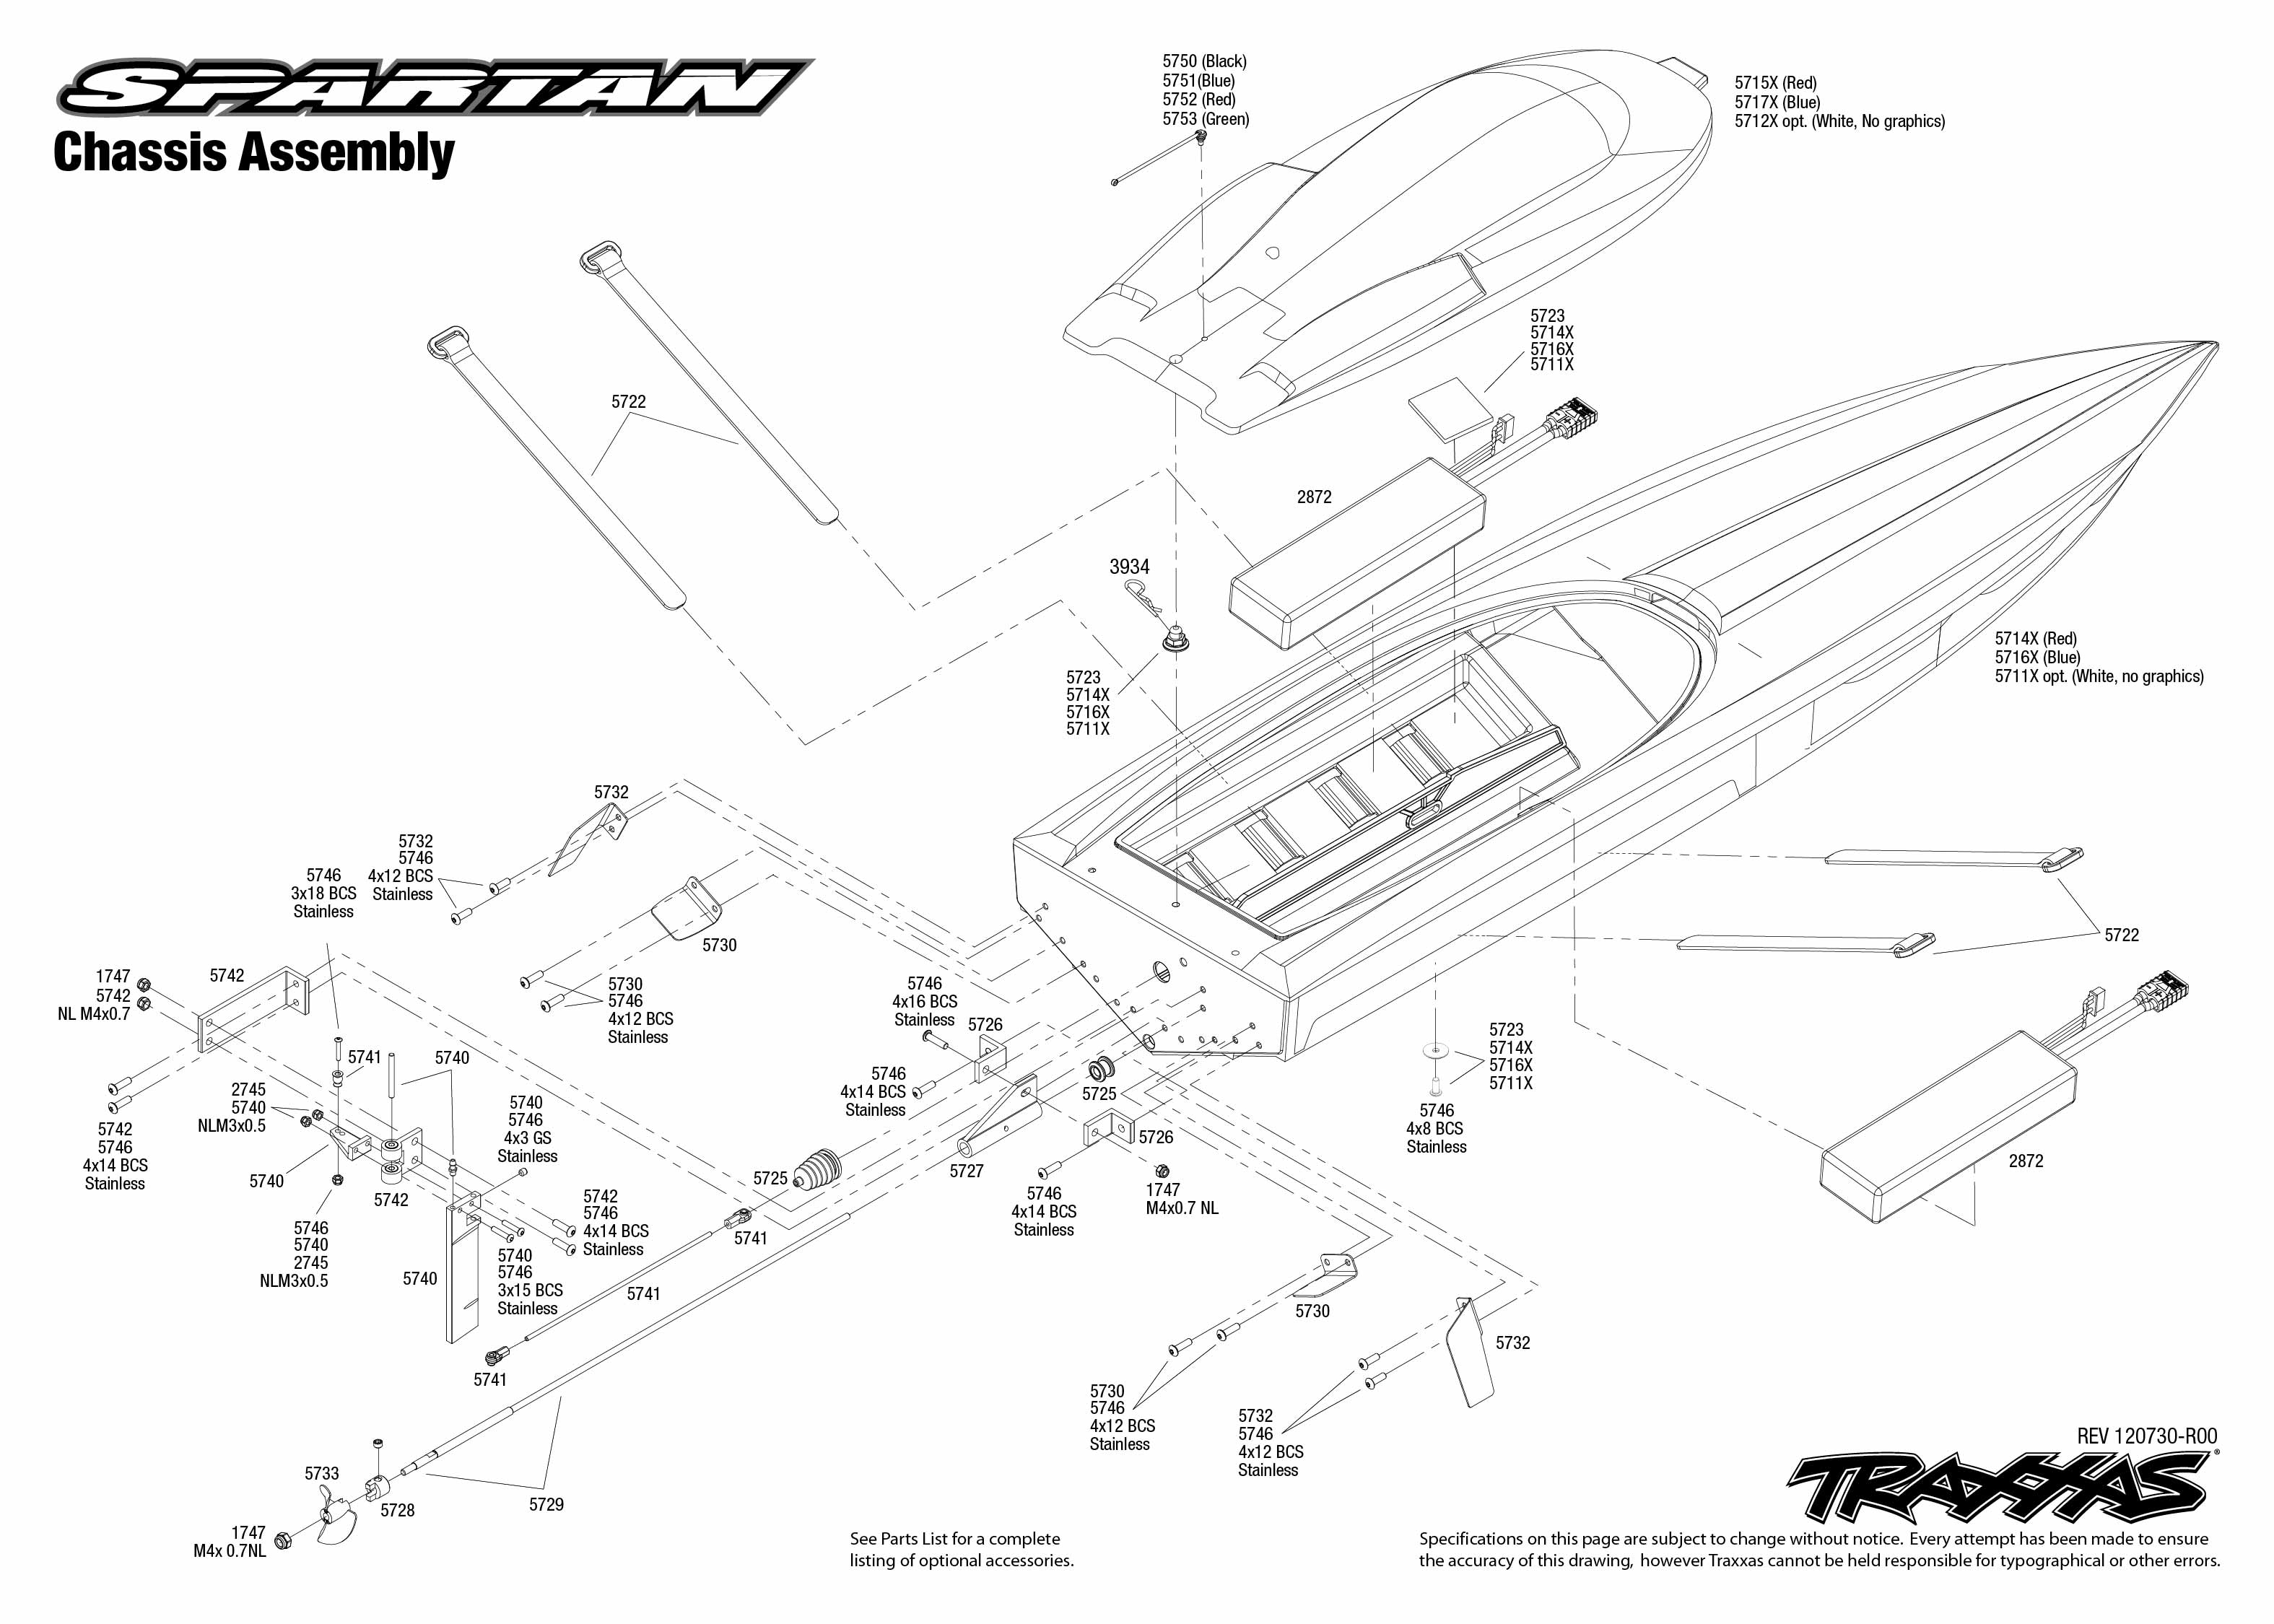 5707 Chassis Exploded View (Spartan, VXL-6s powered by